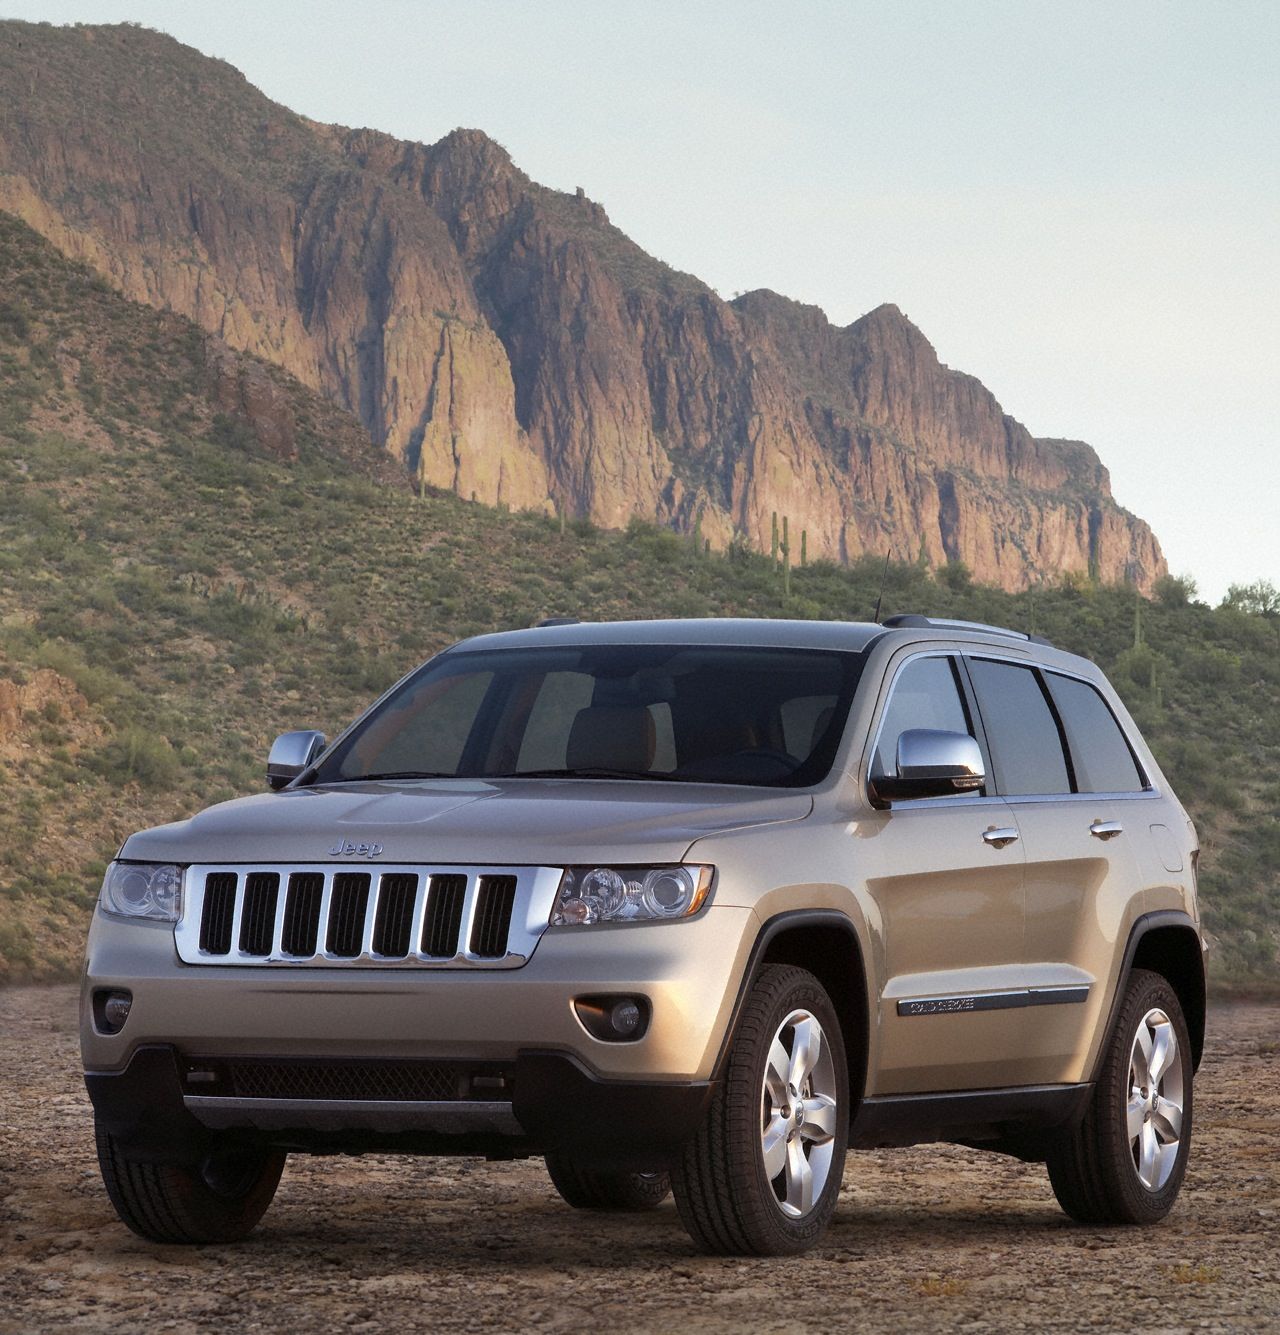 Used Jeeps For Sale In Ny: 2011 Jeep Grand Cherokee Debuts @ NY Auto Show